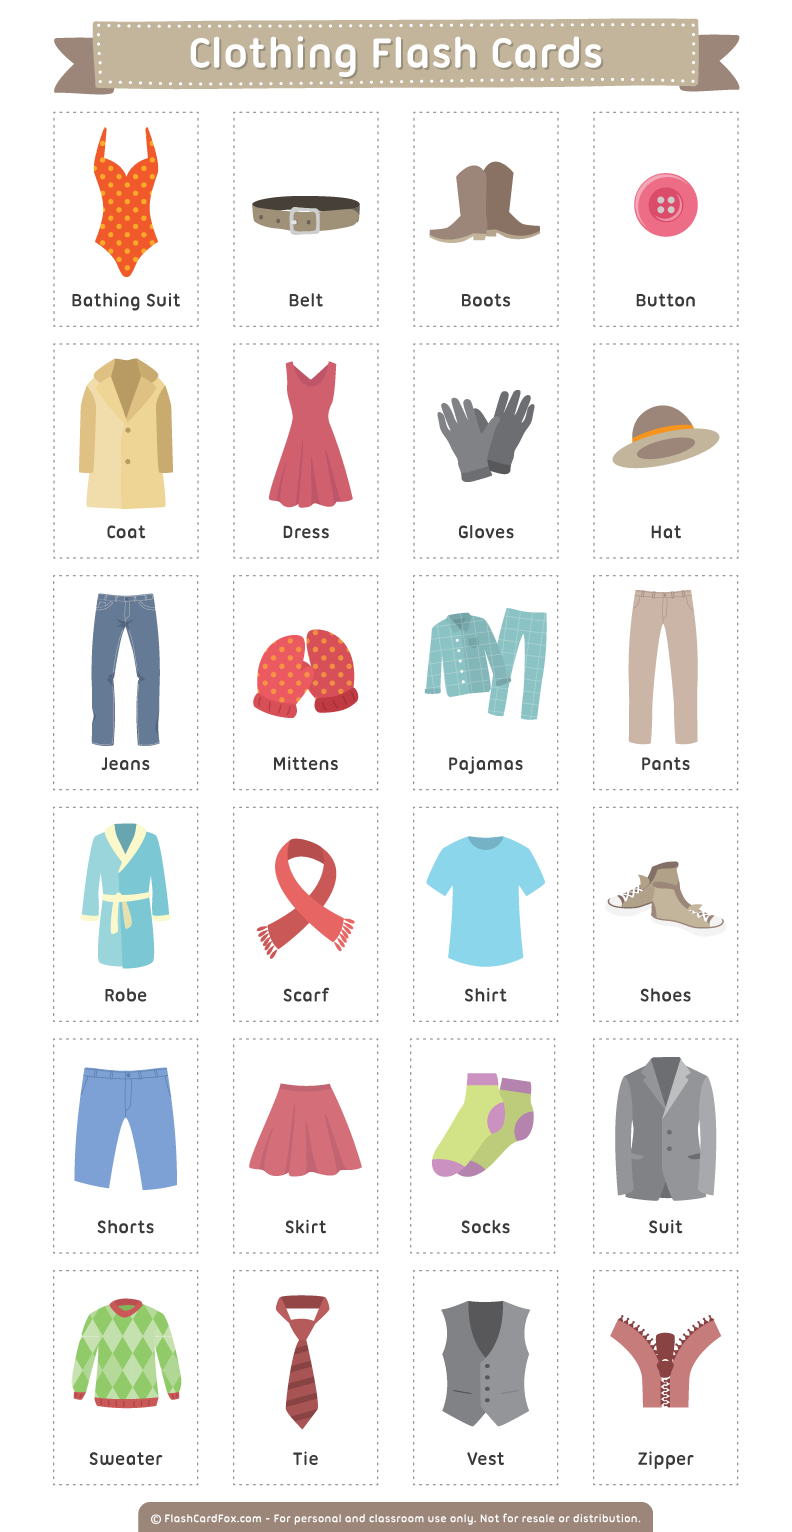 Gloves clipart article clothing. Printable flash cards